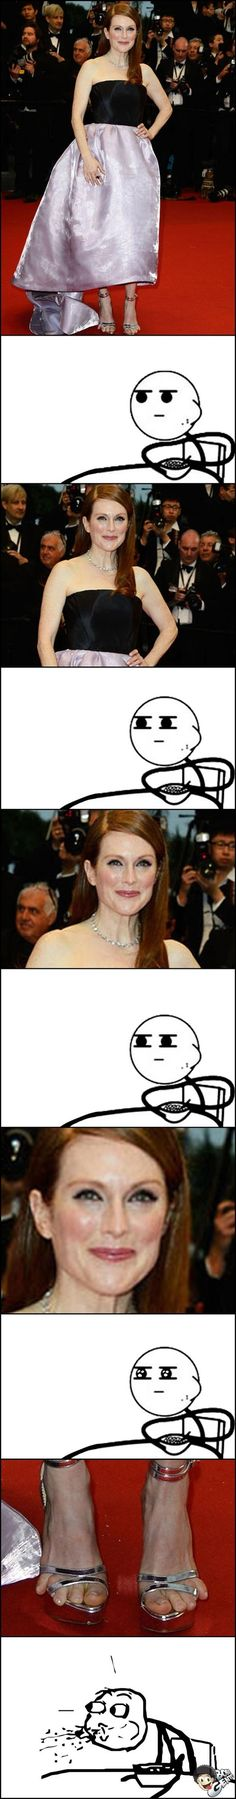 omggg... @Sarah Tapani Julianne Moore has your freak toes!!!